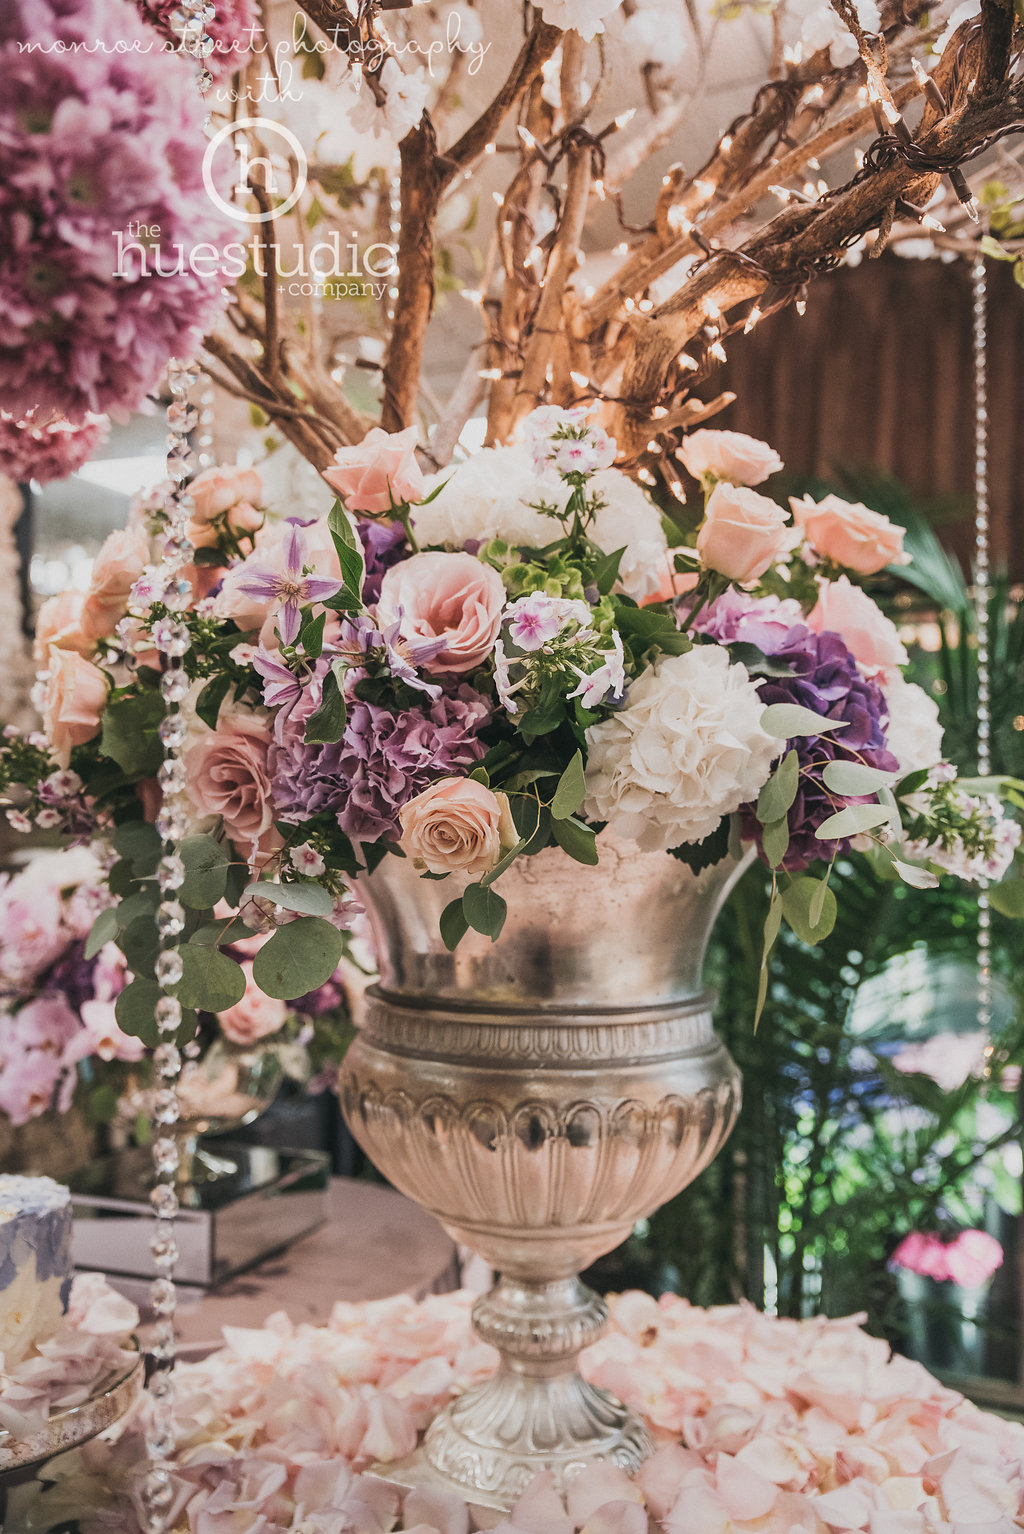 Created by the talented artisans of The Flower Studio, a magnificent silver urn anchored the elegant tablescape with luscious hydrangea, garden roses and flowing greenery.